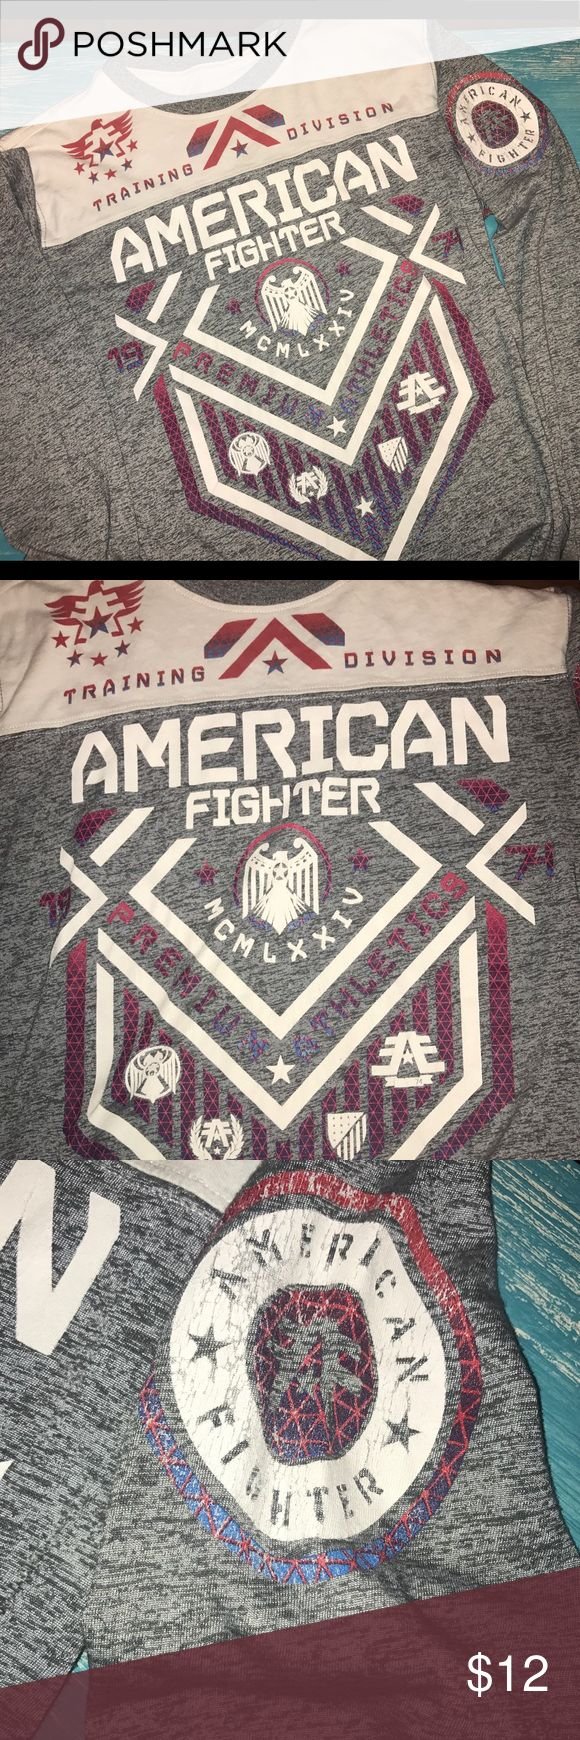 Boys Youth American Fighter tee EUC Boys youth large (12-14) American Fighter long sleeve tee. No trades and price not negotiable. However, qualifies for bundle pricing. American Fighter Shirts & Tops Tees - Long Sleeve